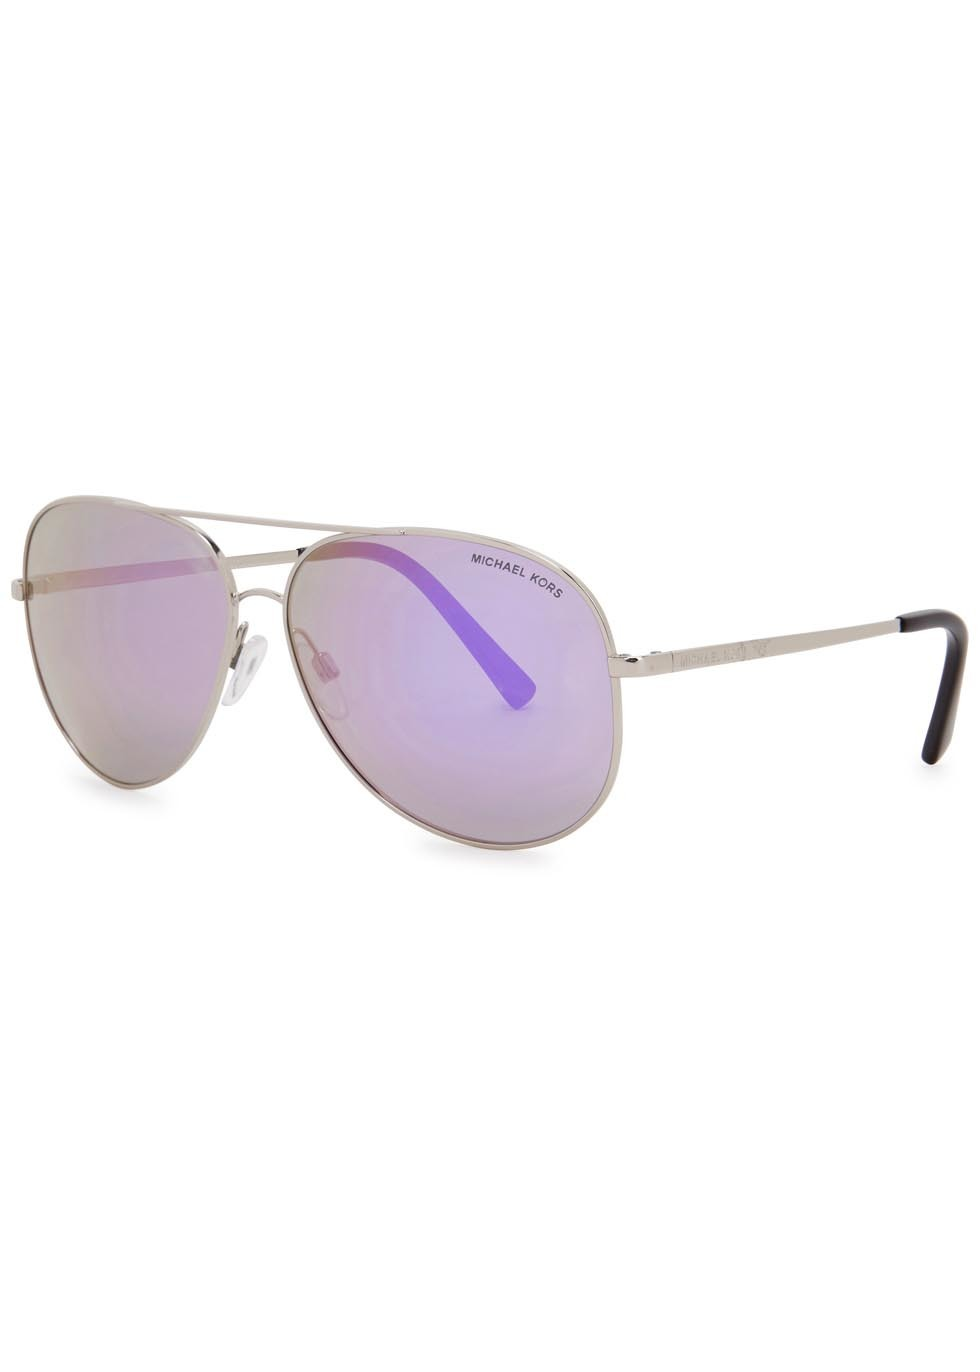 Kendall I Aviator Style Sunglasses - predominant colour: silver; occasions: casual, holiday; style: aviator; size: standard; material: chain/metal; pattern: plain; finish: metallic; season: s/s 2016; wardrobe: basic